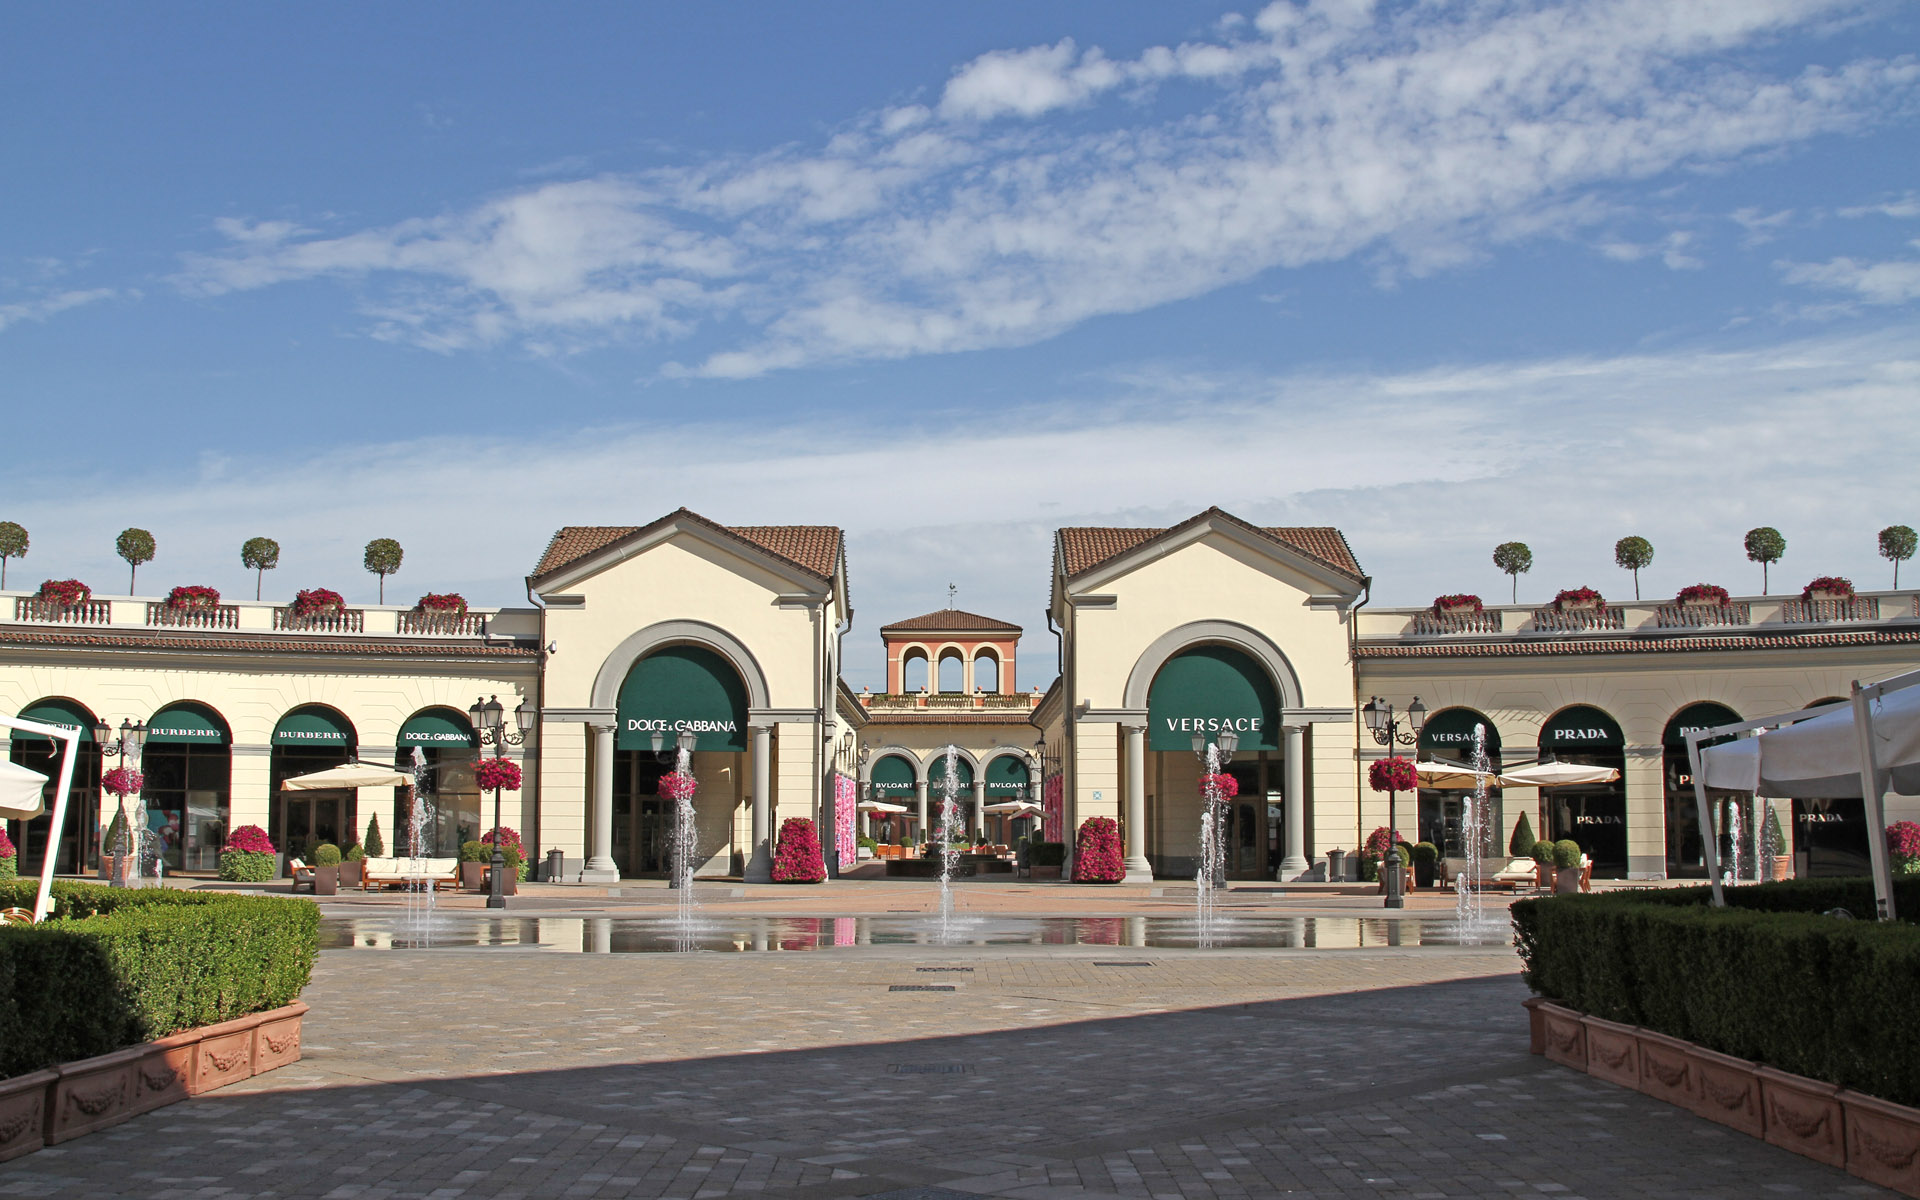 Serravalle designer outlet r p engineering for Serravalle designer outlet